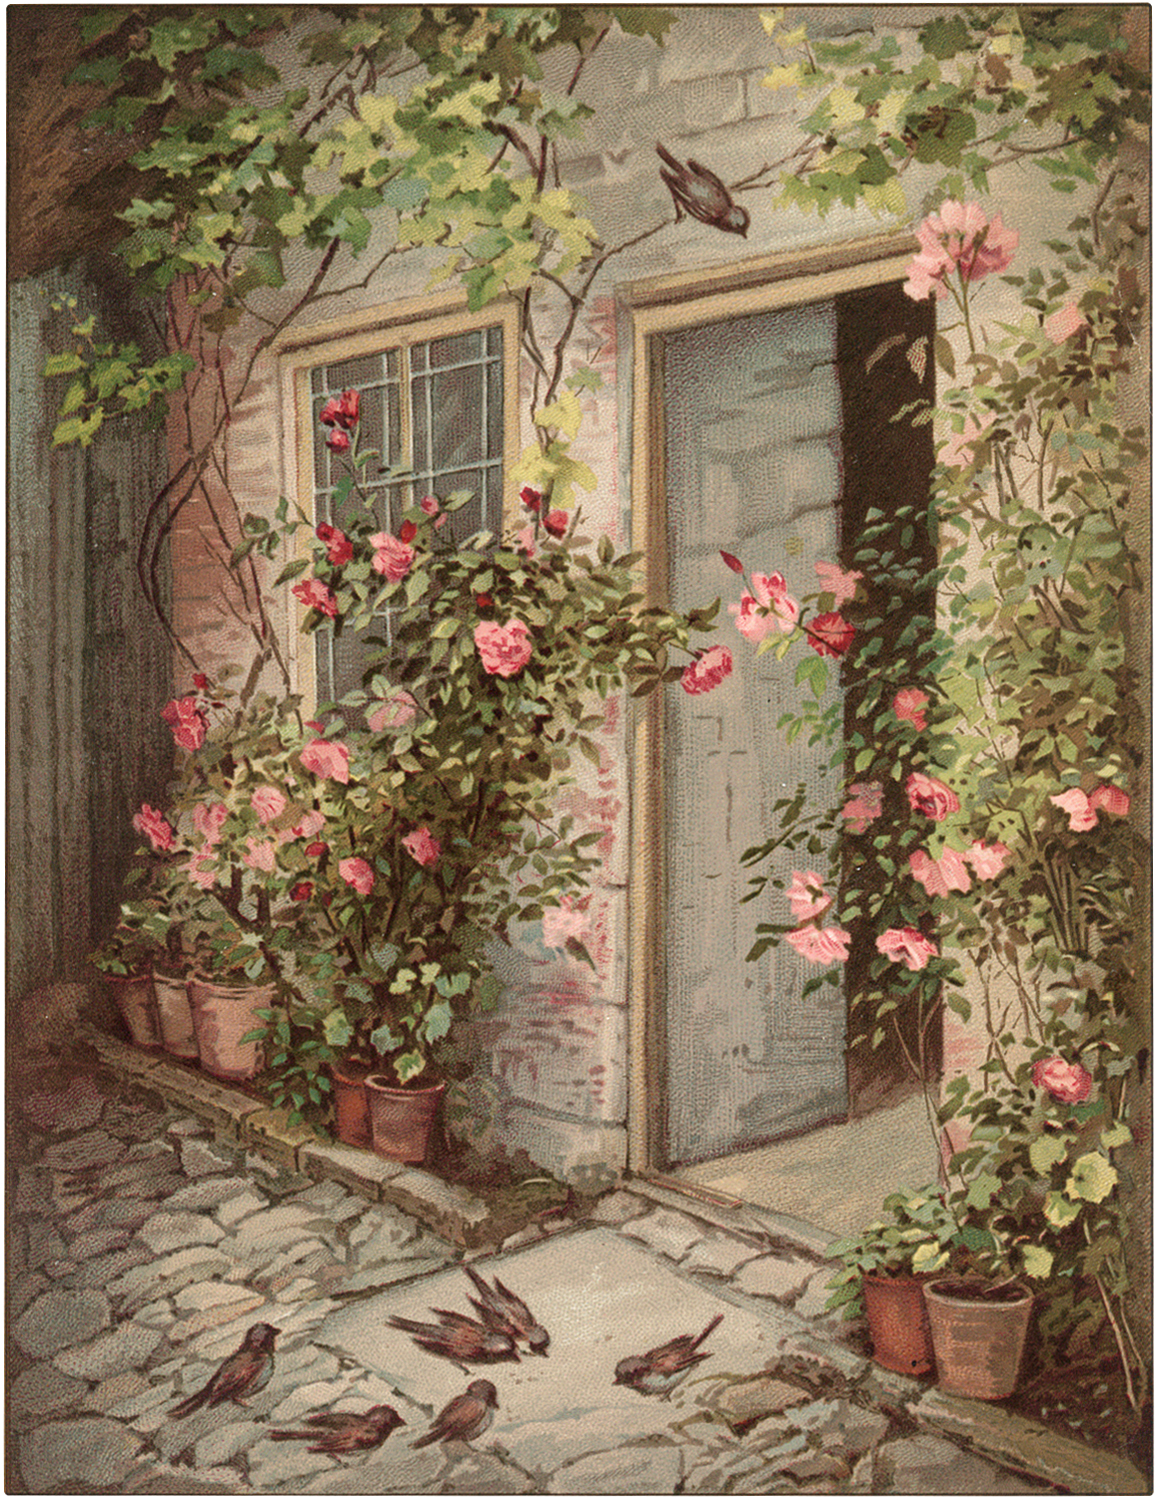 Nostalgic Cottage with Climbing Pink Roses and Birds Image! - The ...